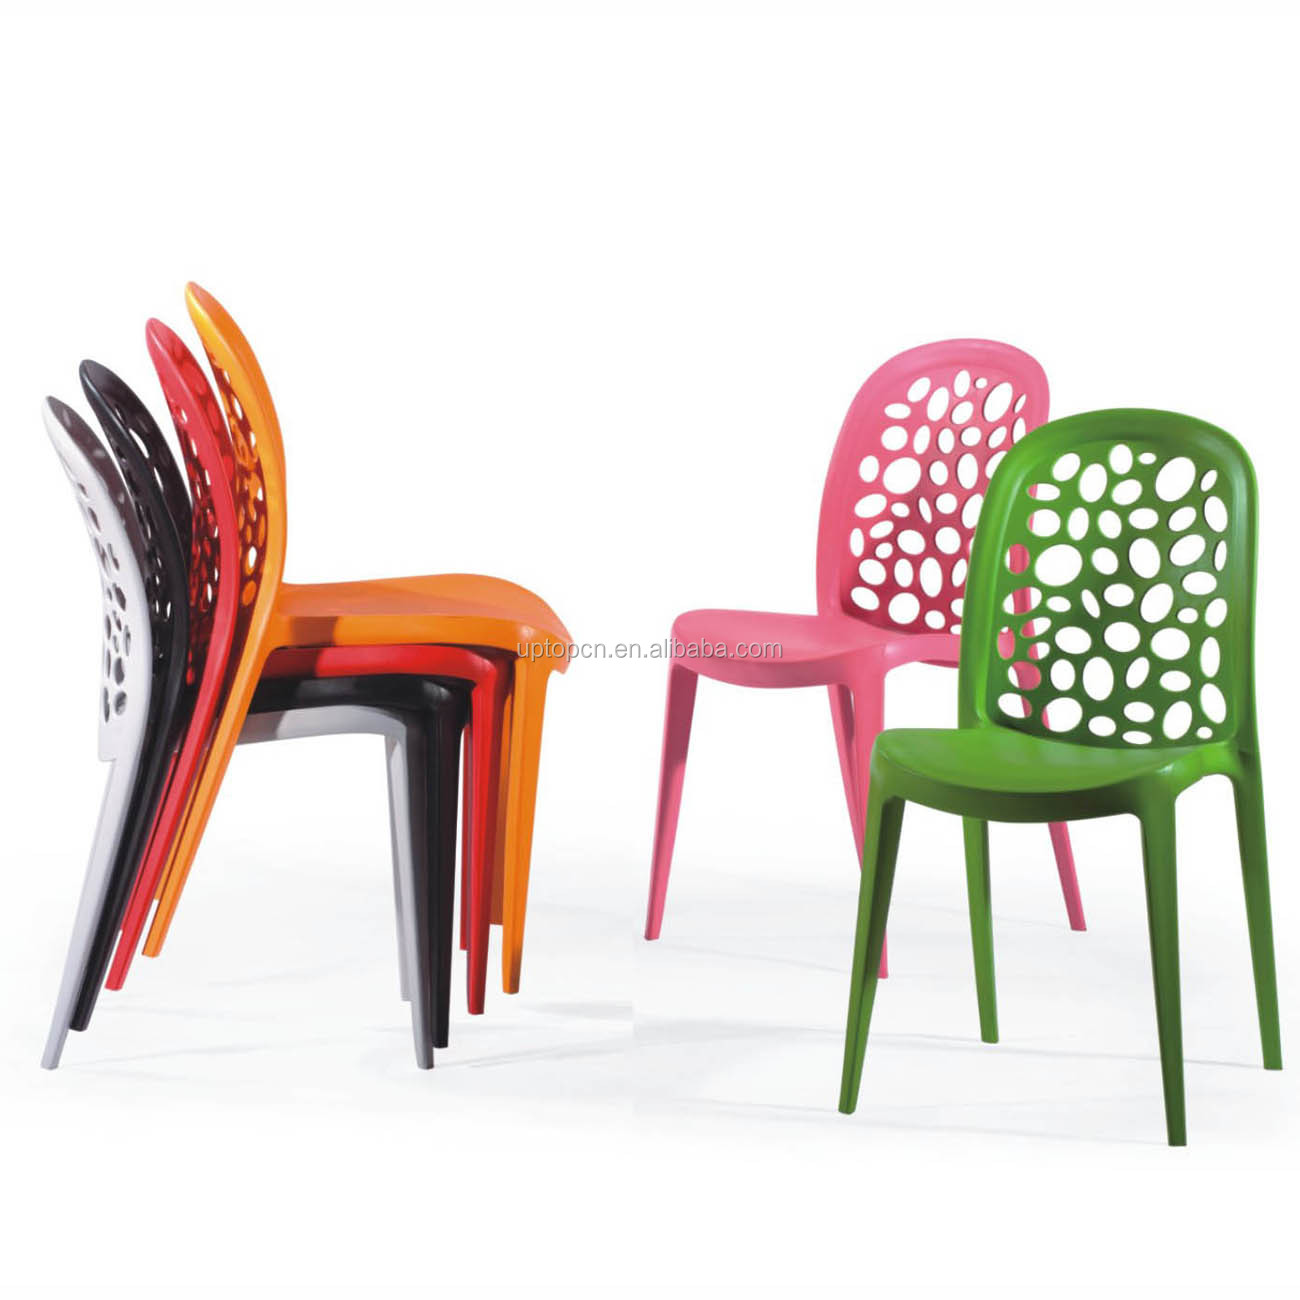 Cool Haircuts For Guys With furthermore Amazing Used Wood Pallet Projects additionally Hammock Green Plastic Stackable Outdoor Modern Dining Chair Modern Outdoor Chairs also Outdoor additionally Childrens Plastic Garden Table And Chairs. on stackable patio chairs white